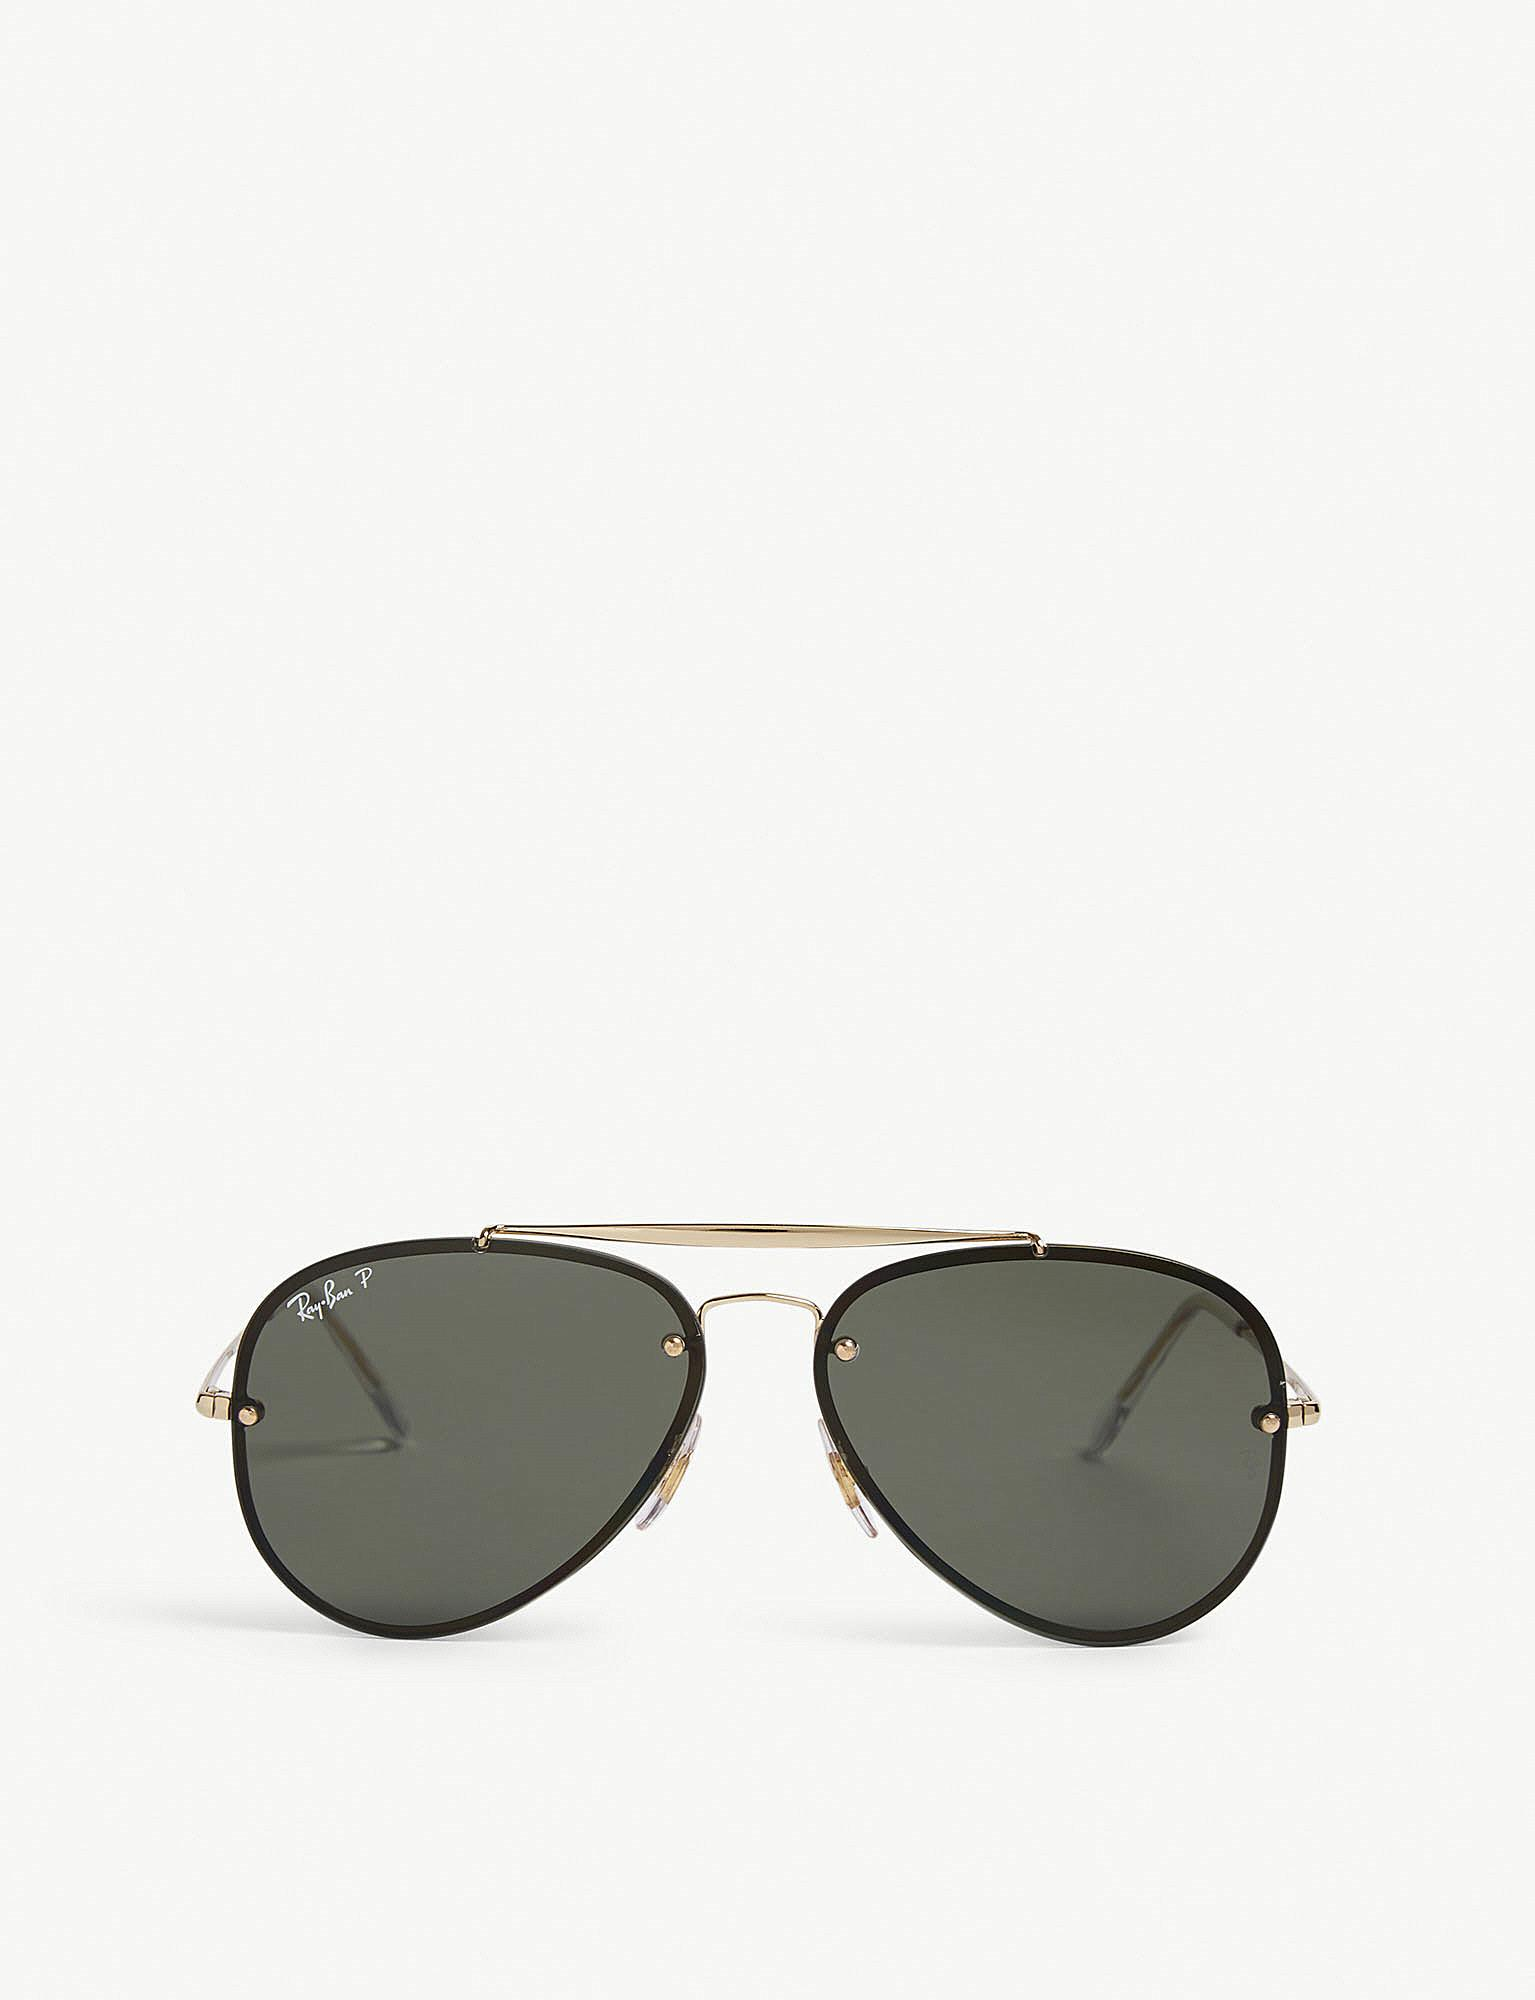 363a722e748 Lyst - Ray-Ban Rb3584 Aviator Sunglasses in Metallic for Men